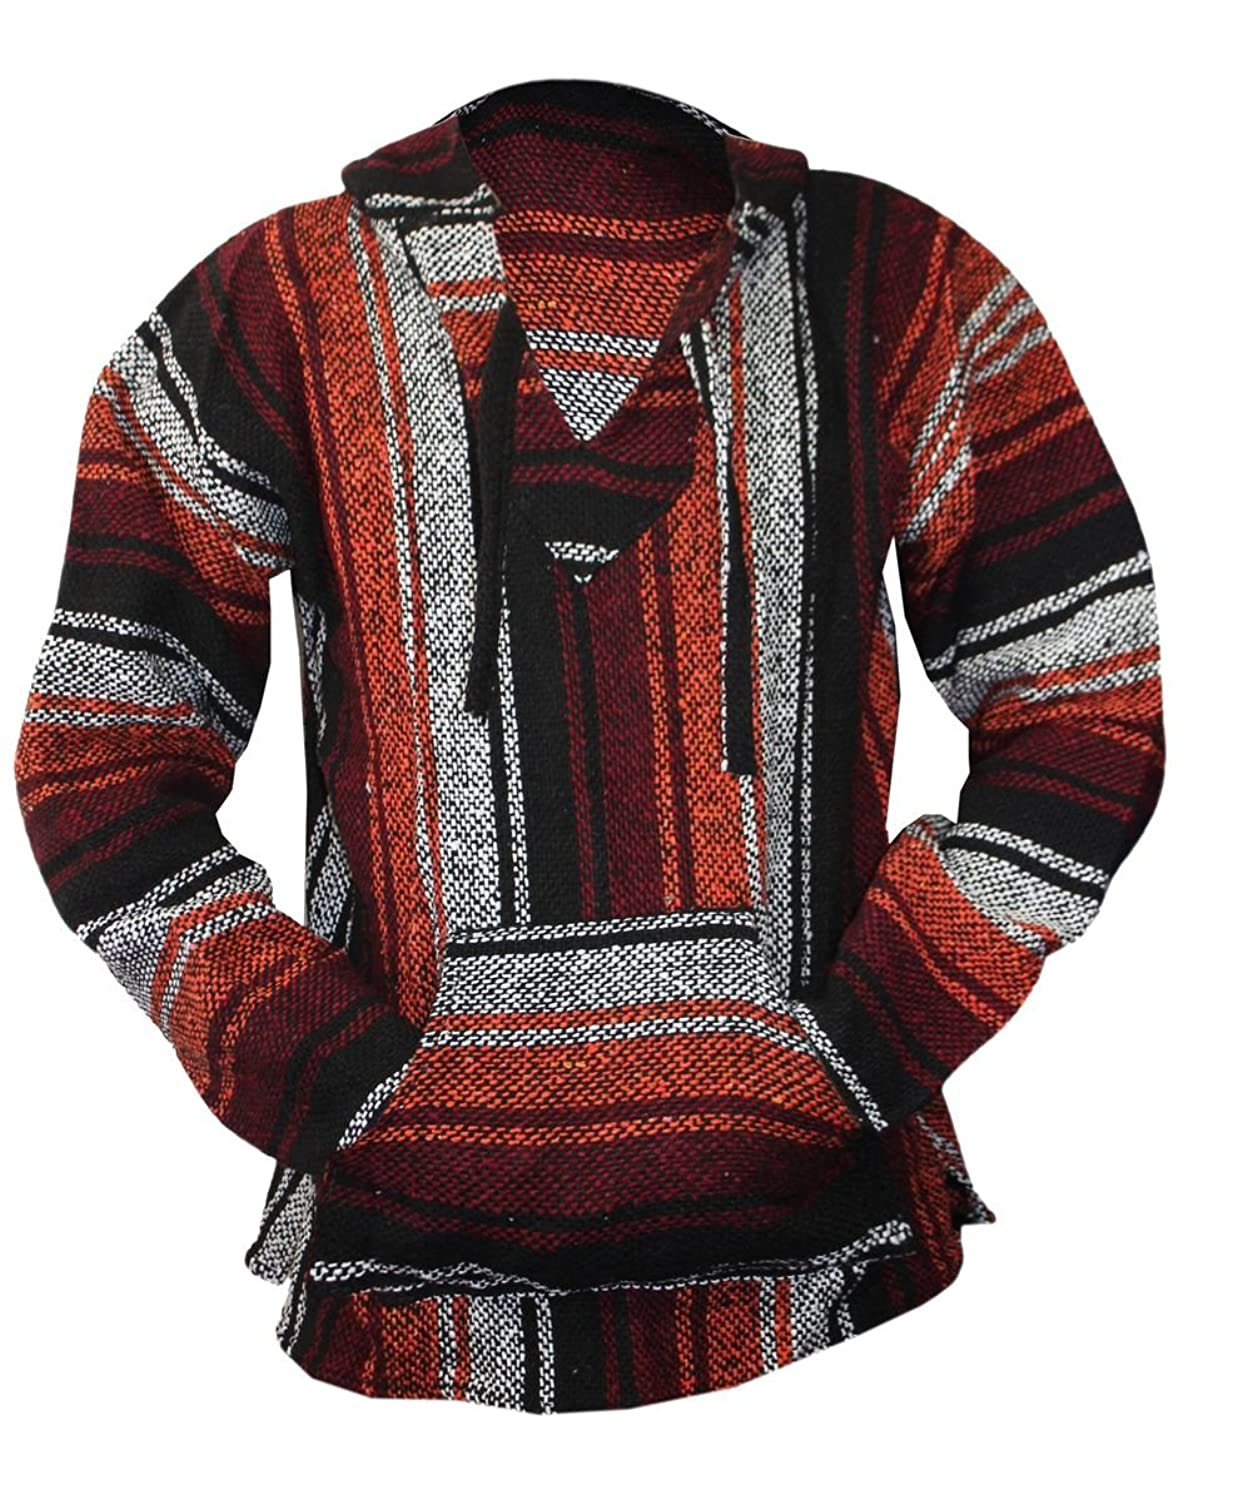 Amazon.com: Mexican Baja Hoodie Sweater Jerga Pullover Burgundy ...